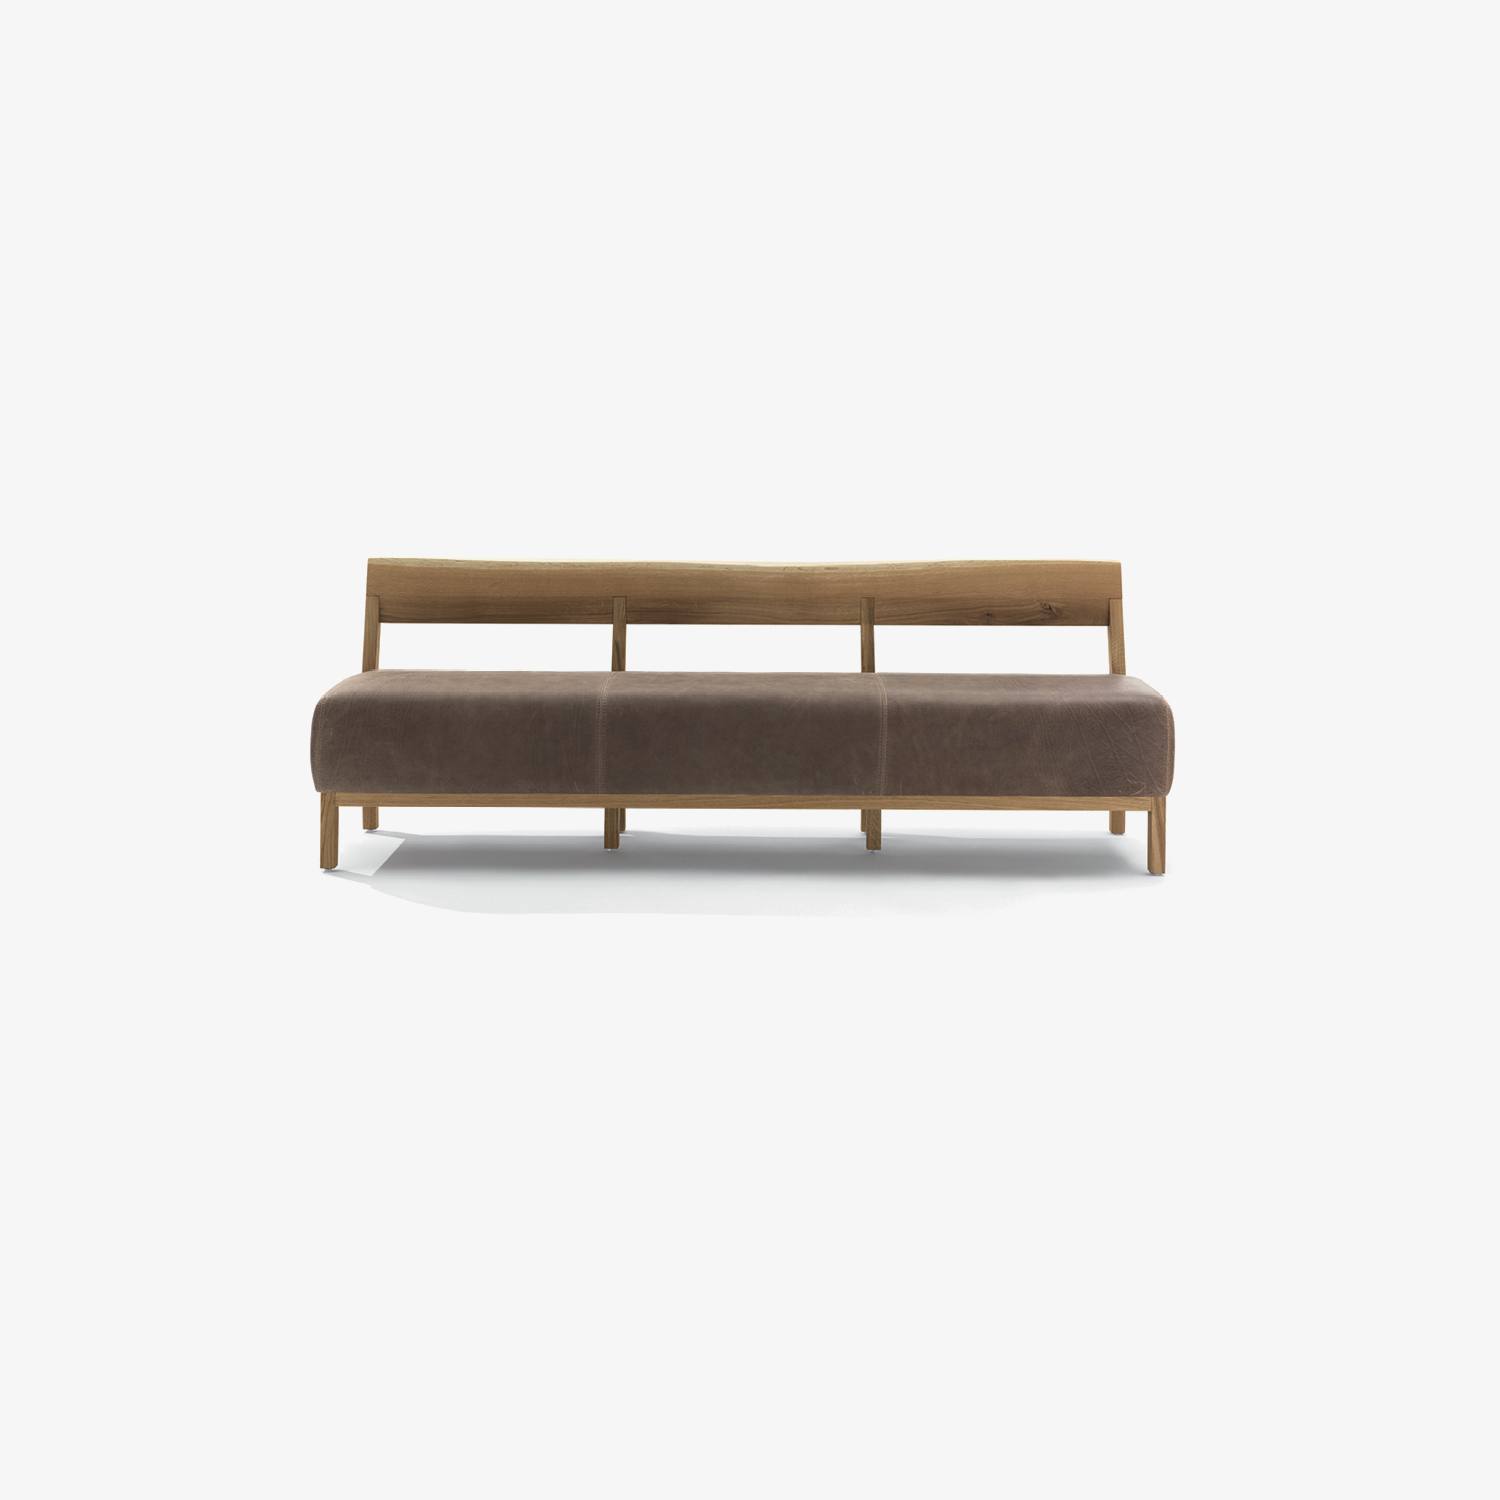 Modern bench BETTY BENCH | Solid wood and leather bench | Solid wood and fabric bench | Design bench